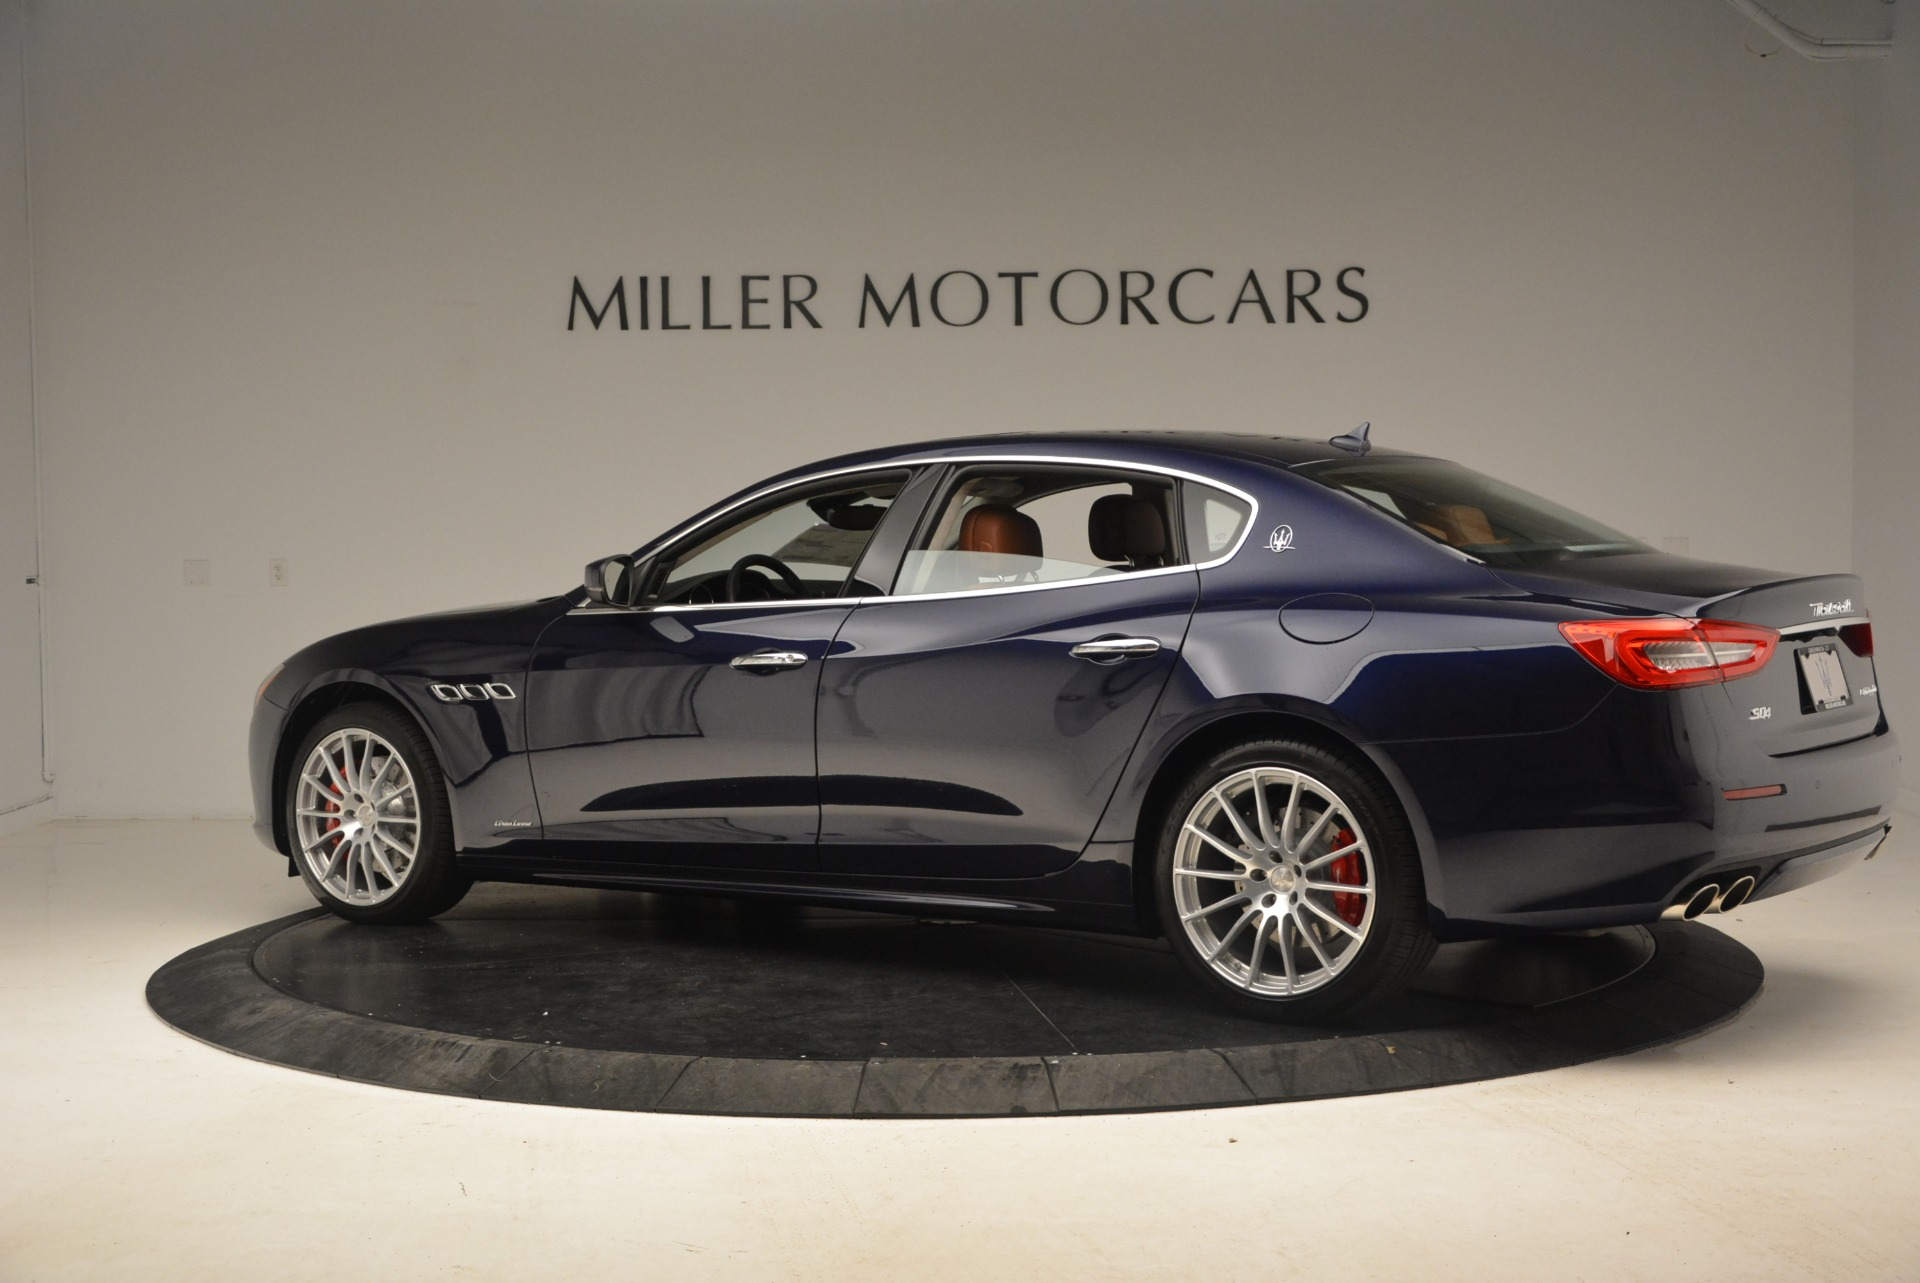 New 2019 Maserati Quattroporte S Q4 GranLusso For Sale In Greenwich, CT. Alfa Romeo of Greenwich, W631 2767_p4